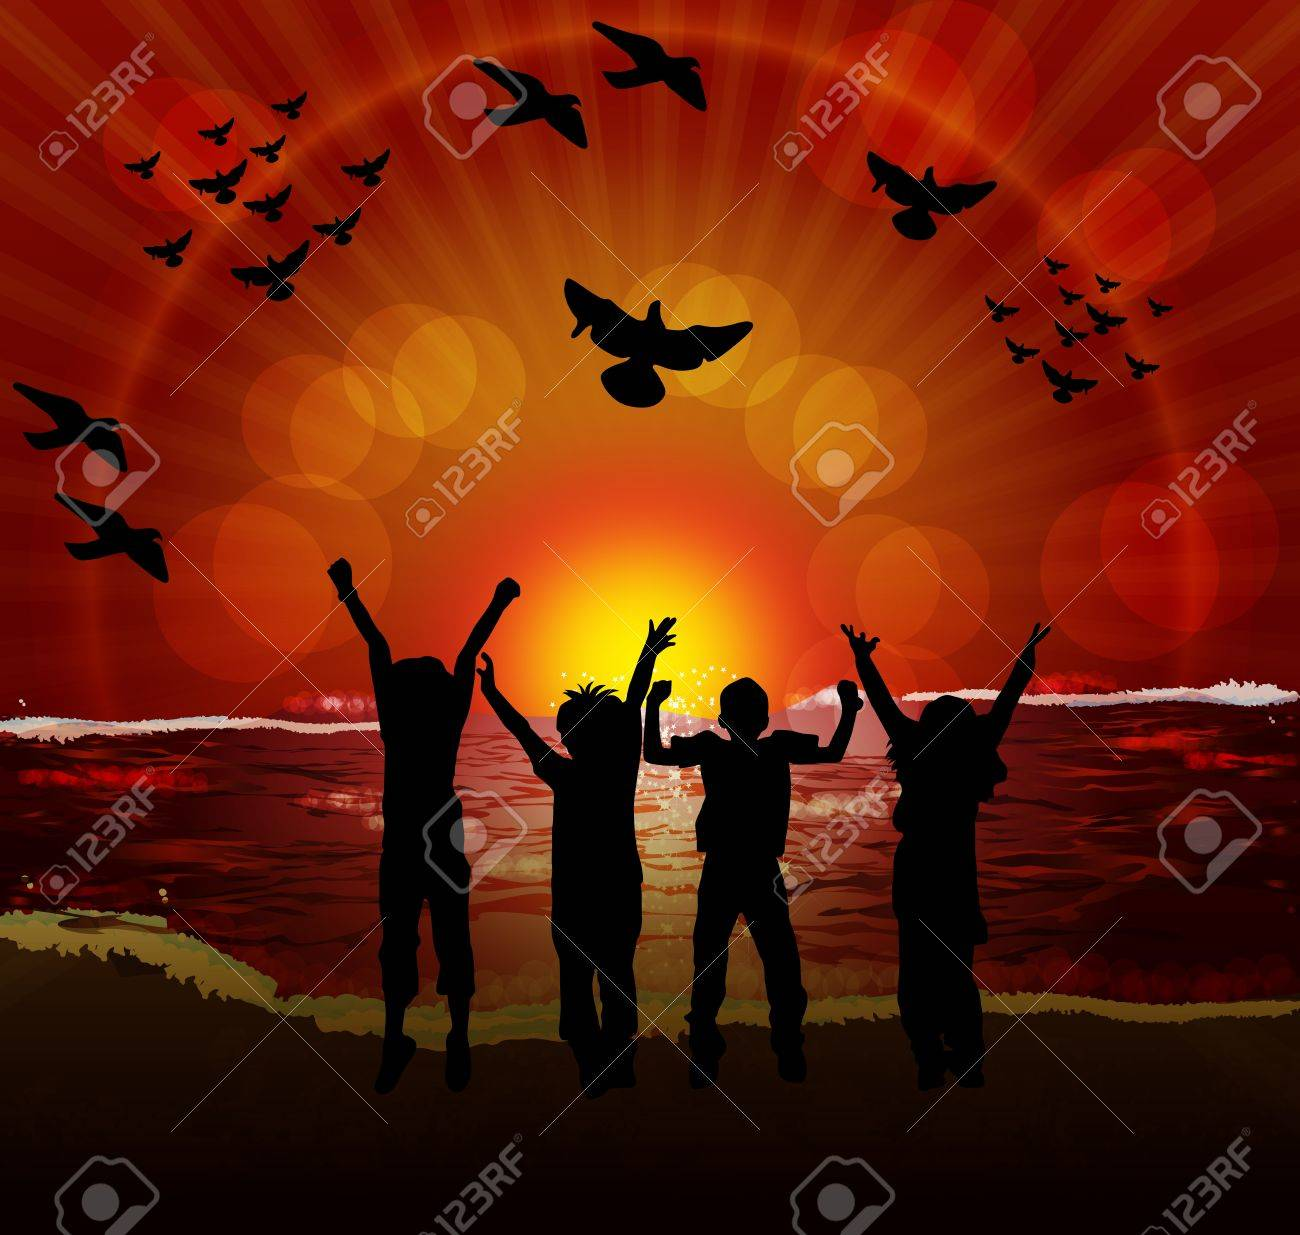 children silhouettes on sunset background Stock Vector - 11513788